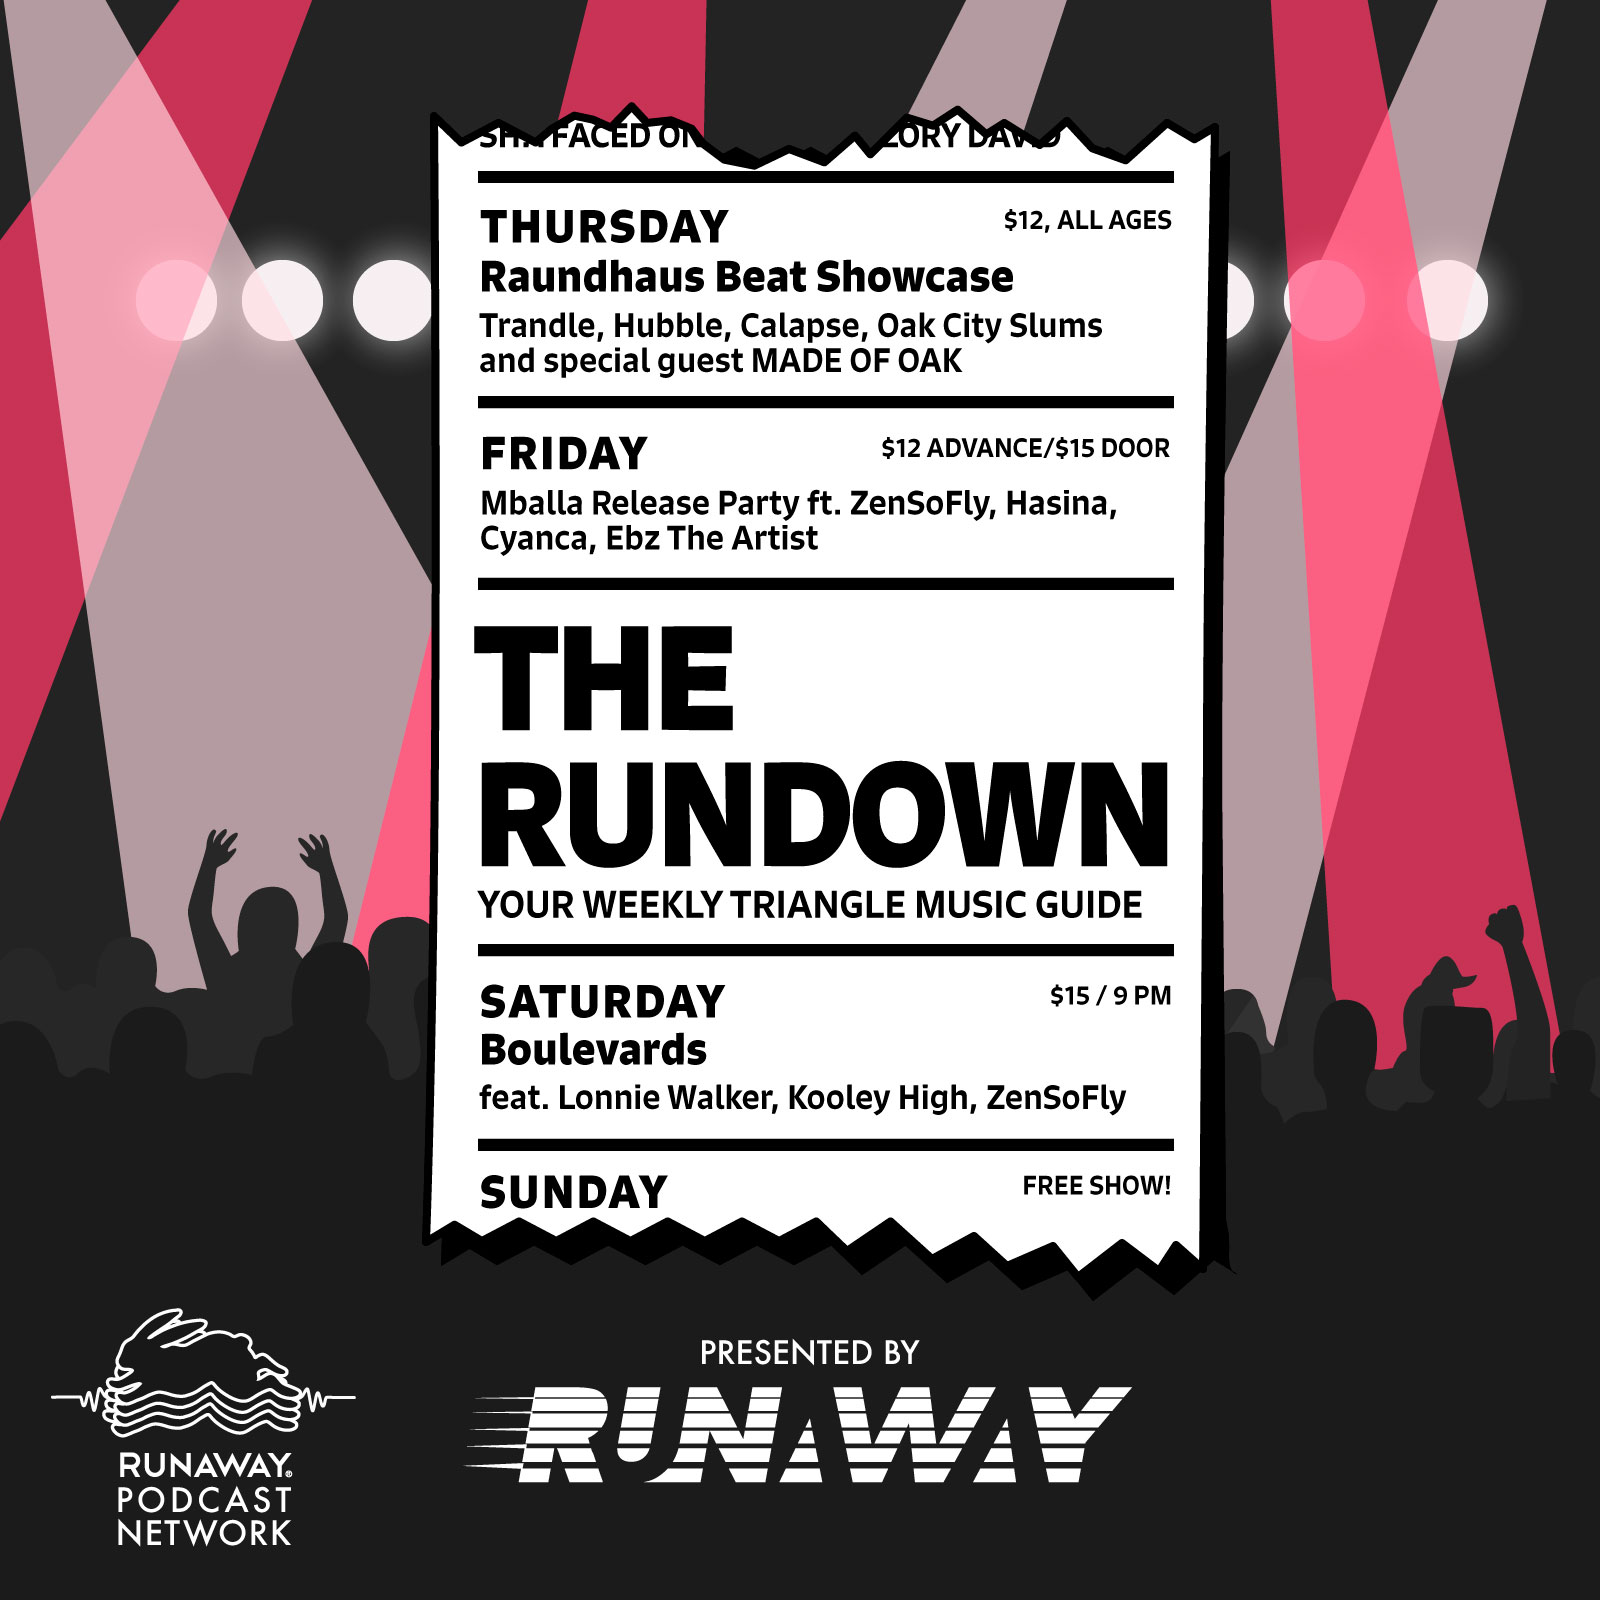 The Rundown is your guide to what's happening in the Triangle. Join Mandy Padgett and I each Monday to let us help you plan your week accordingly.